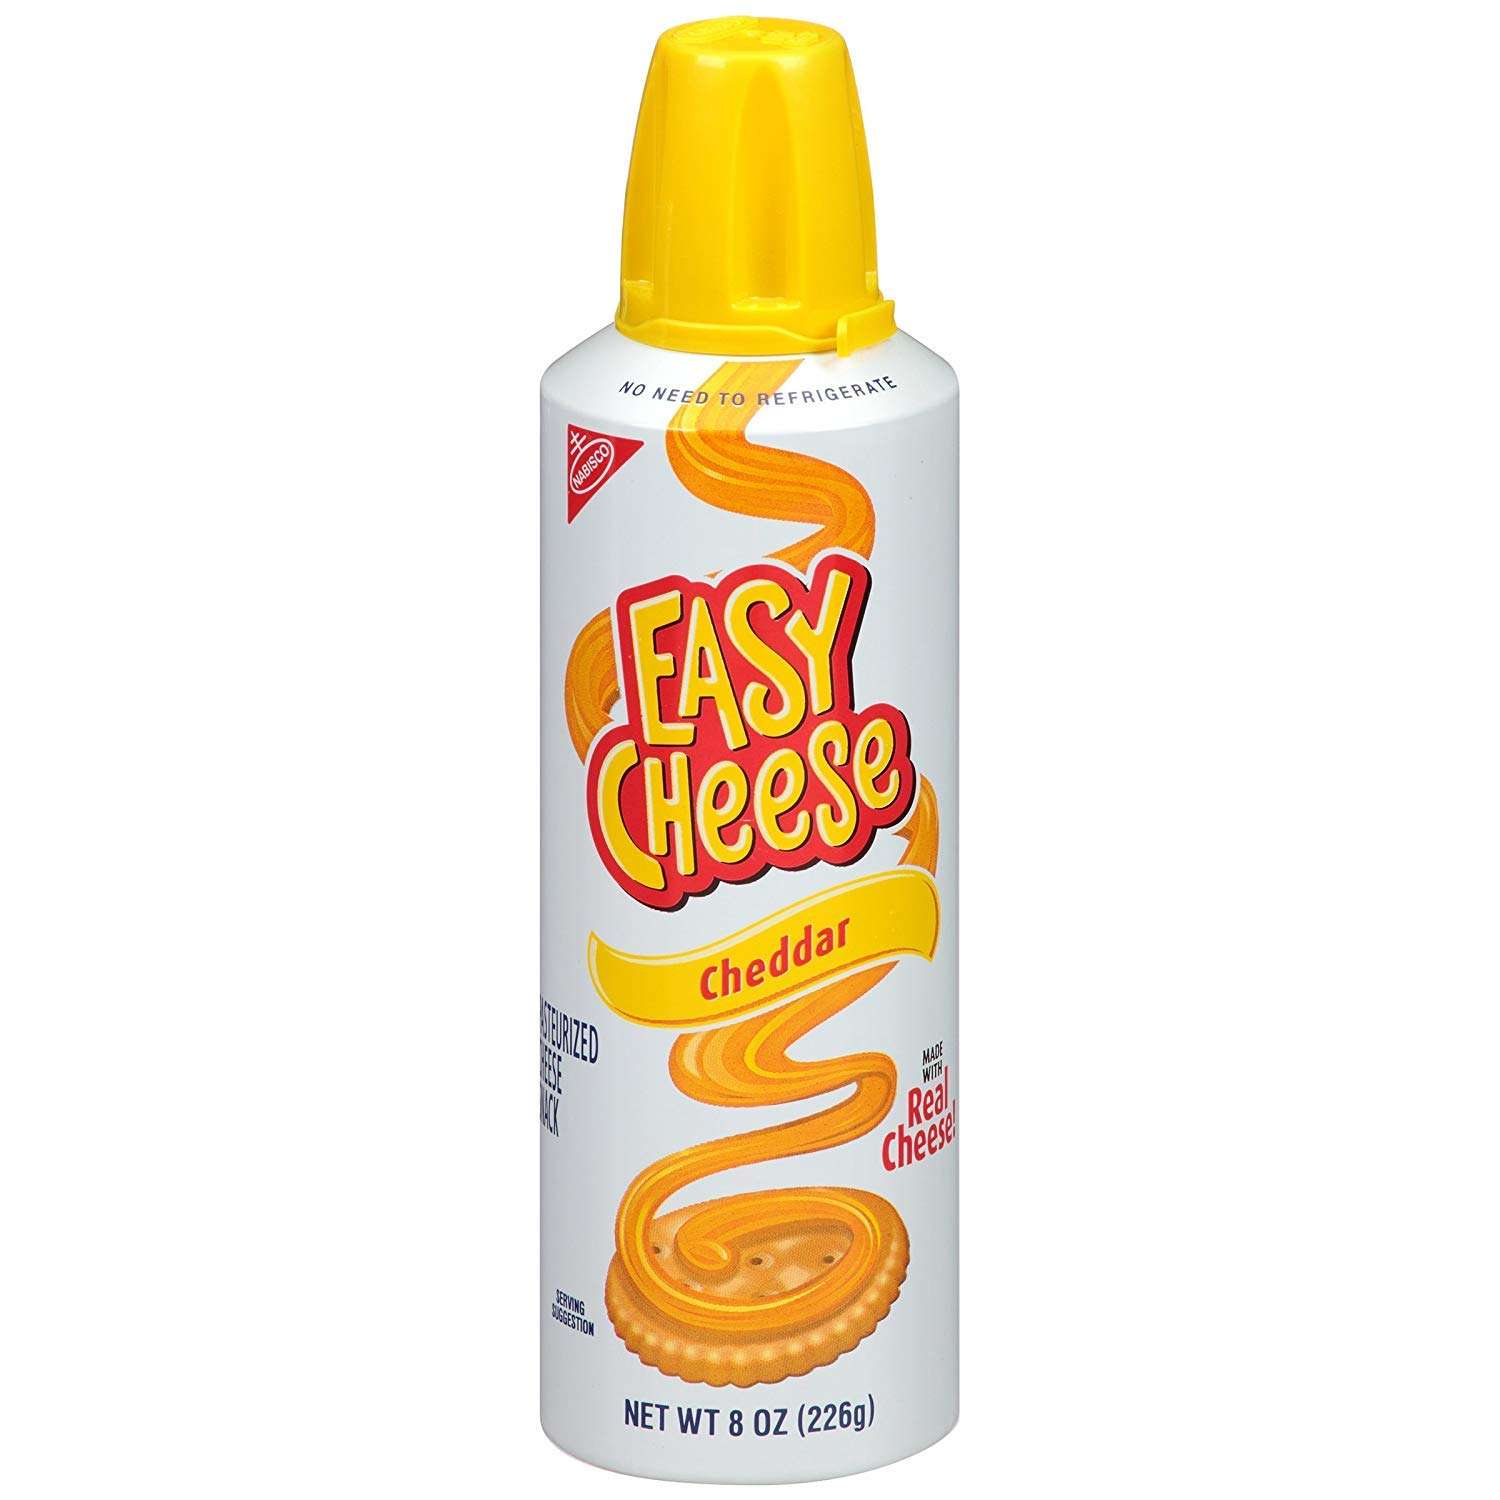 Easy Cheese Cheddar Cheese Snack, 8 Ounce (Pack of 12) ((3 Pack of 12)) by Easy Cheese (Image #1)